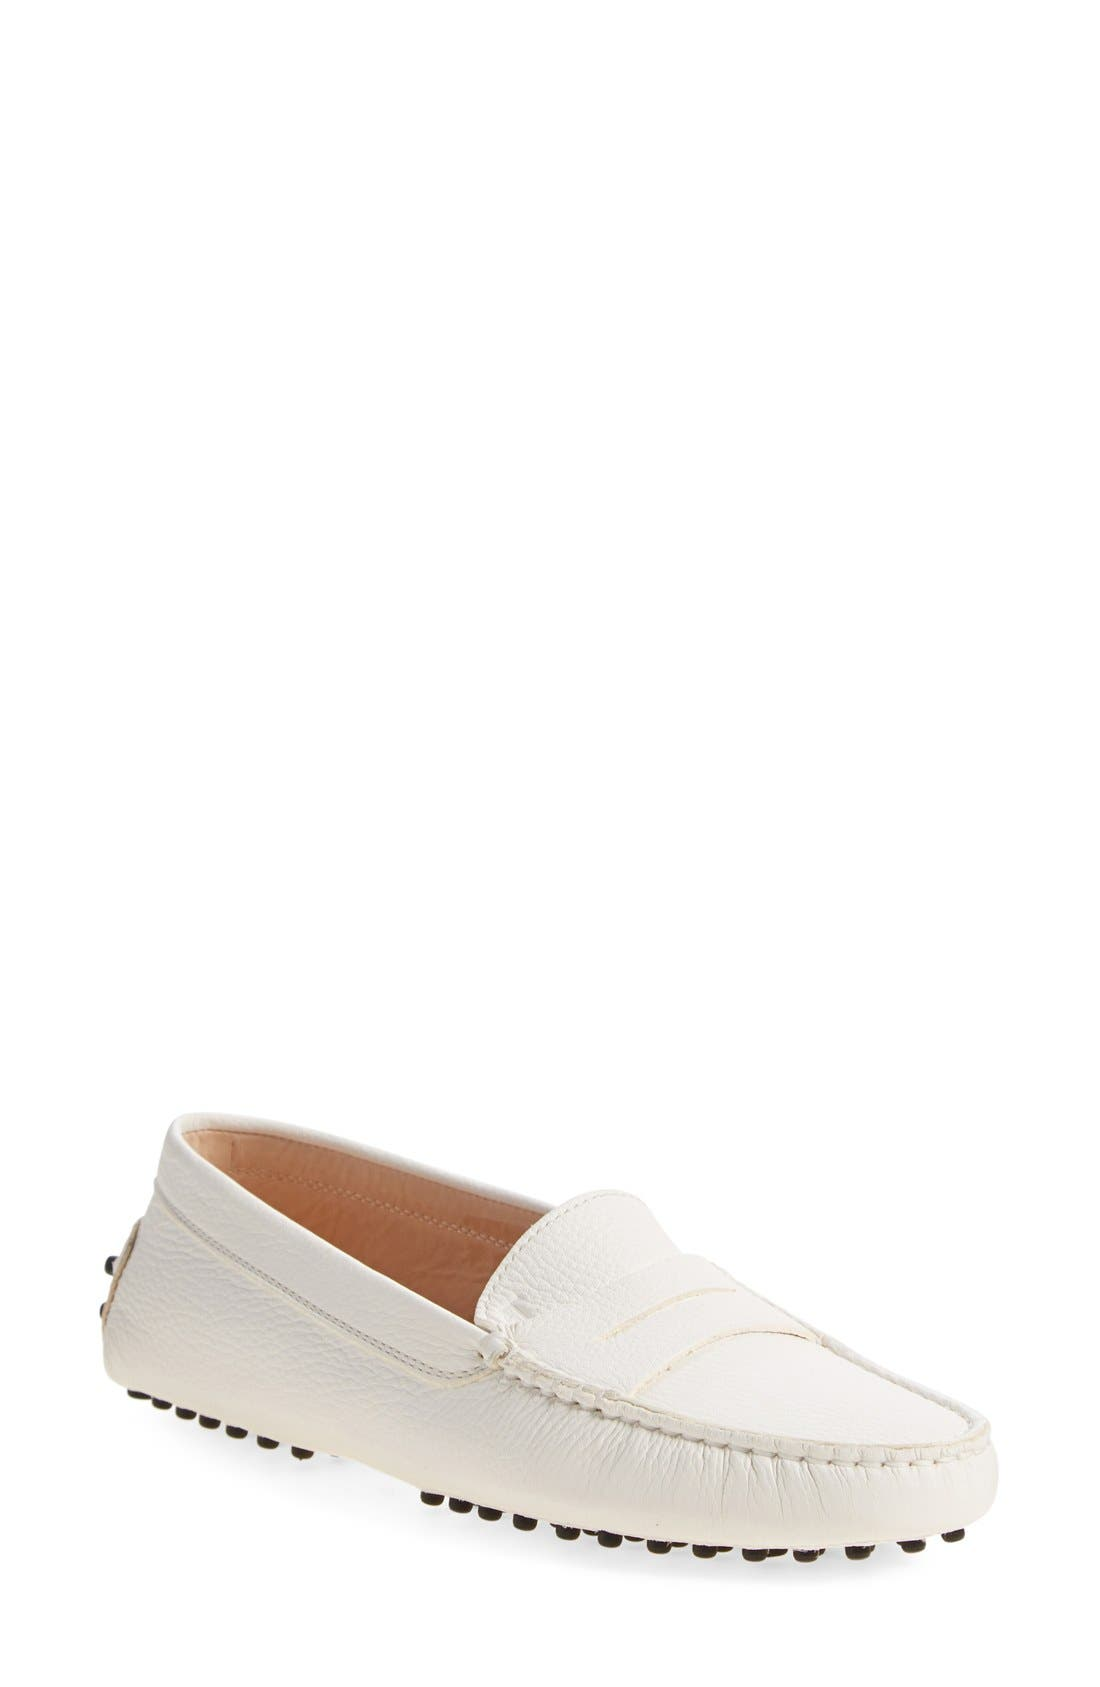 Main Image - Tod's 'Gommini' Driving Moccasin